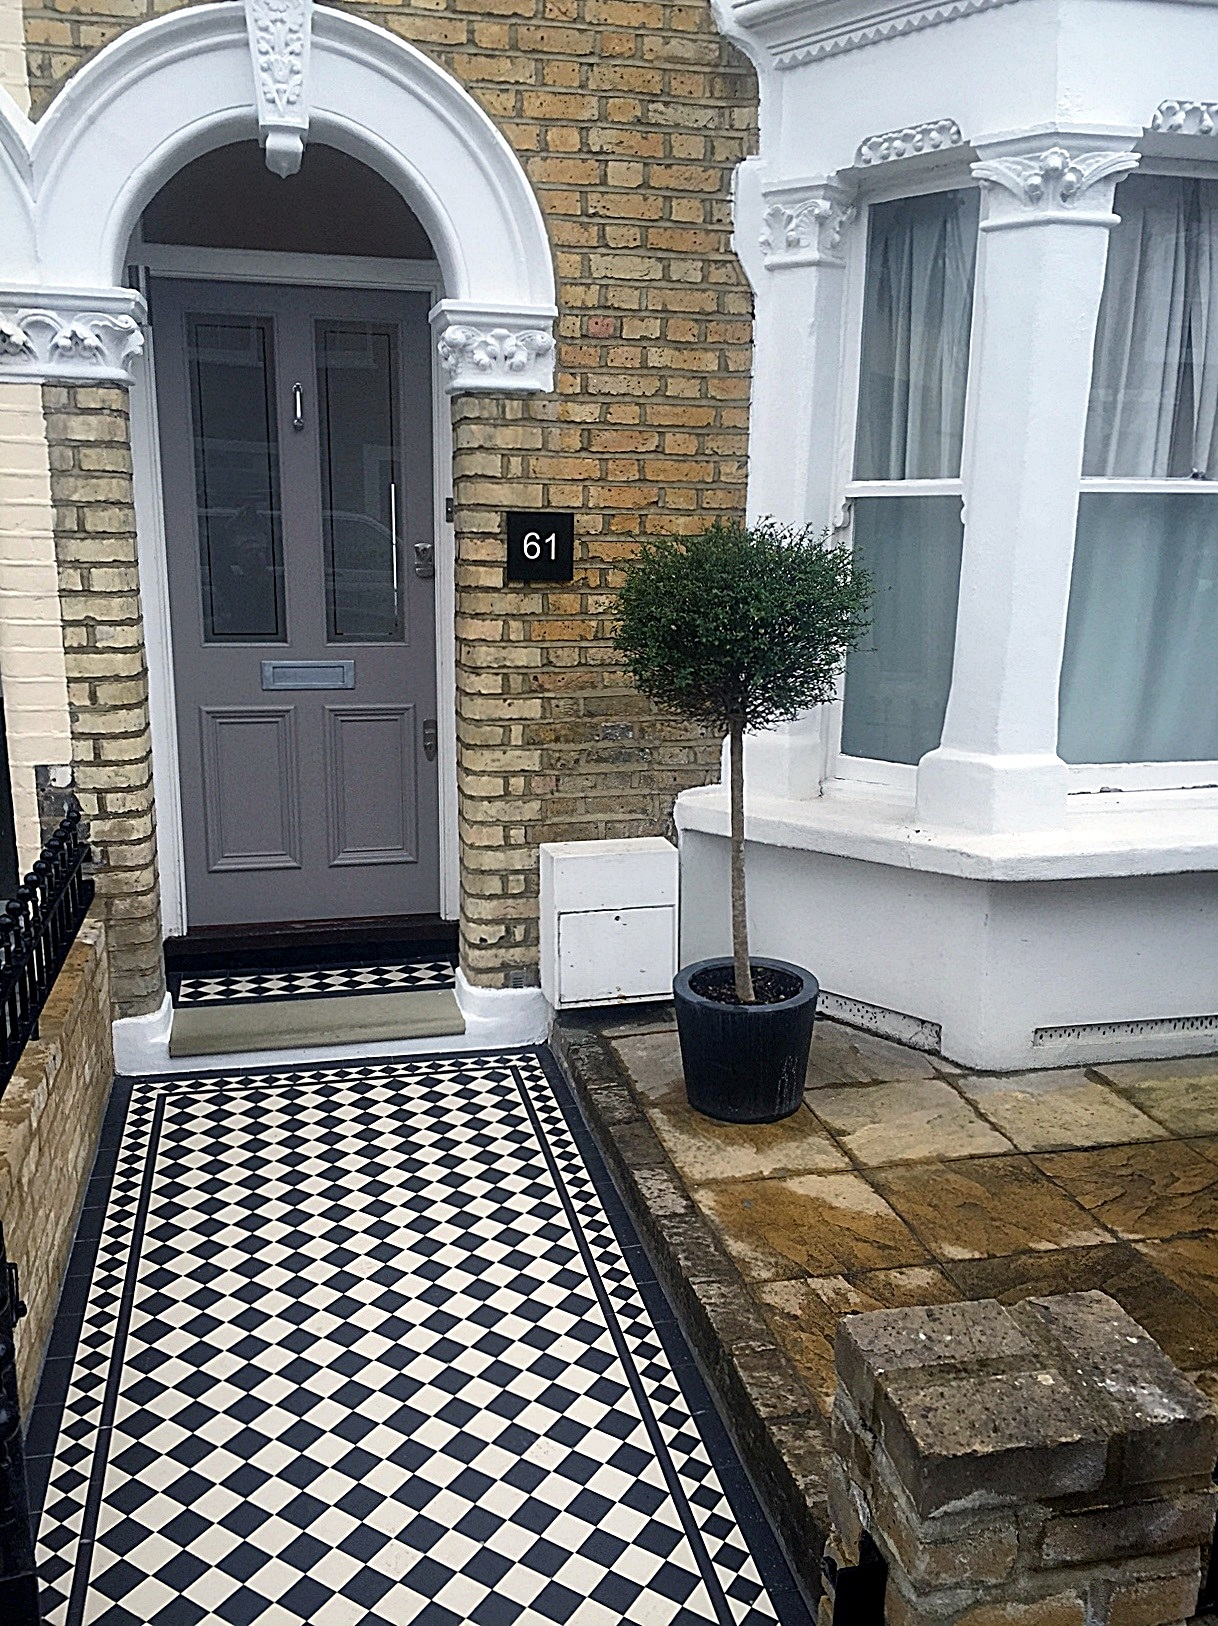 front garden victroian mosaic tile garden path in black and white dulwich peckham greenwich london